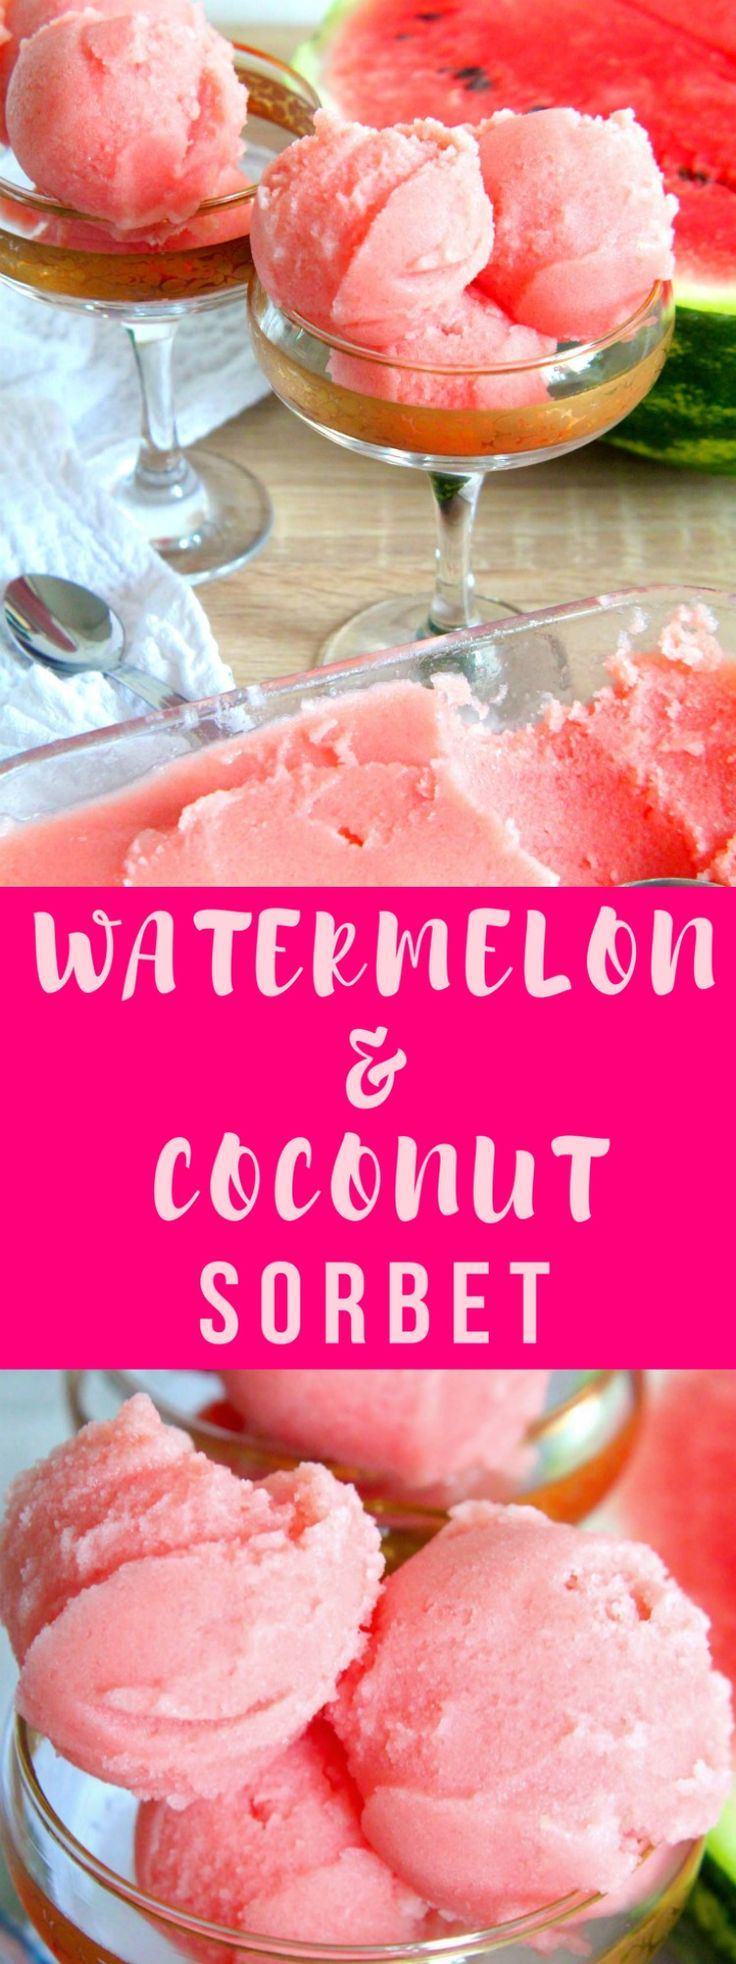 WATERMELON COCONUT SORBET RECIPE - All you need is three simple ingredients to make this incredibly delicious watermelon sorbet!